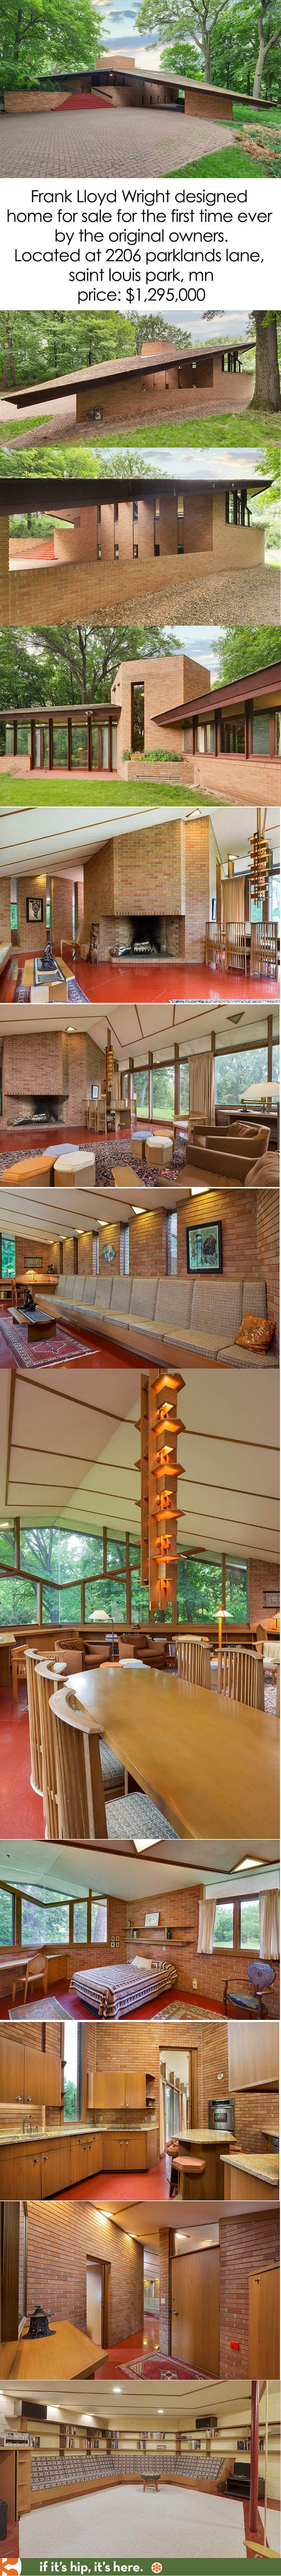 1361 best architecture images on Pinterest | Frank lloyd wright ...